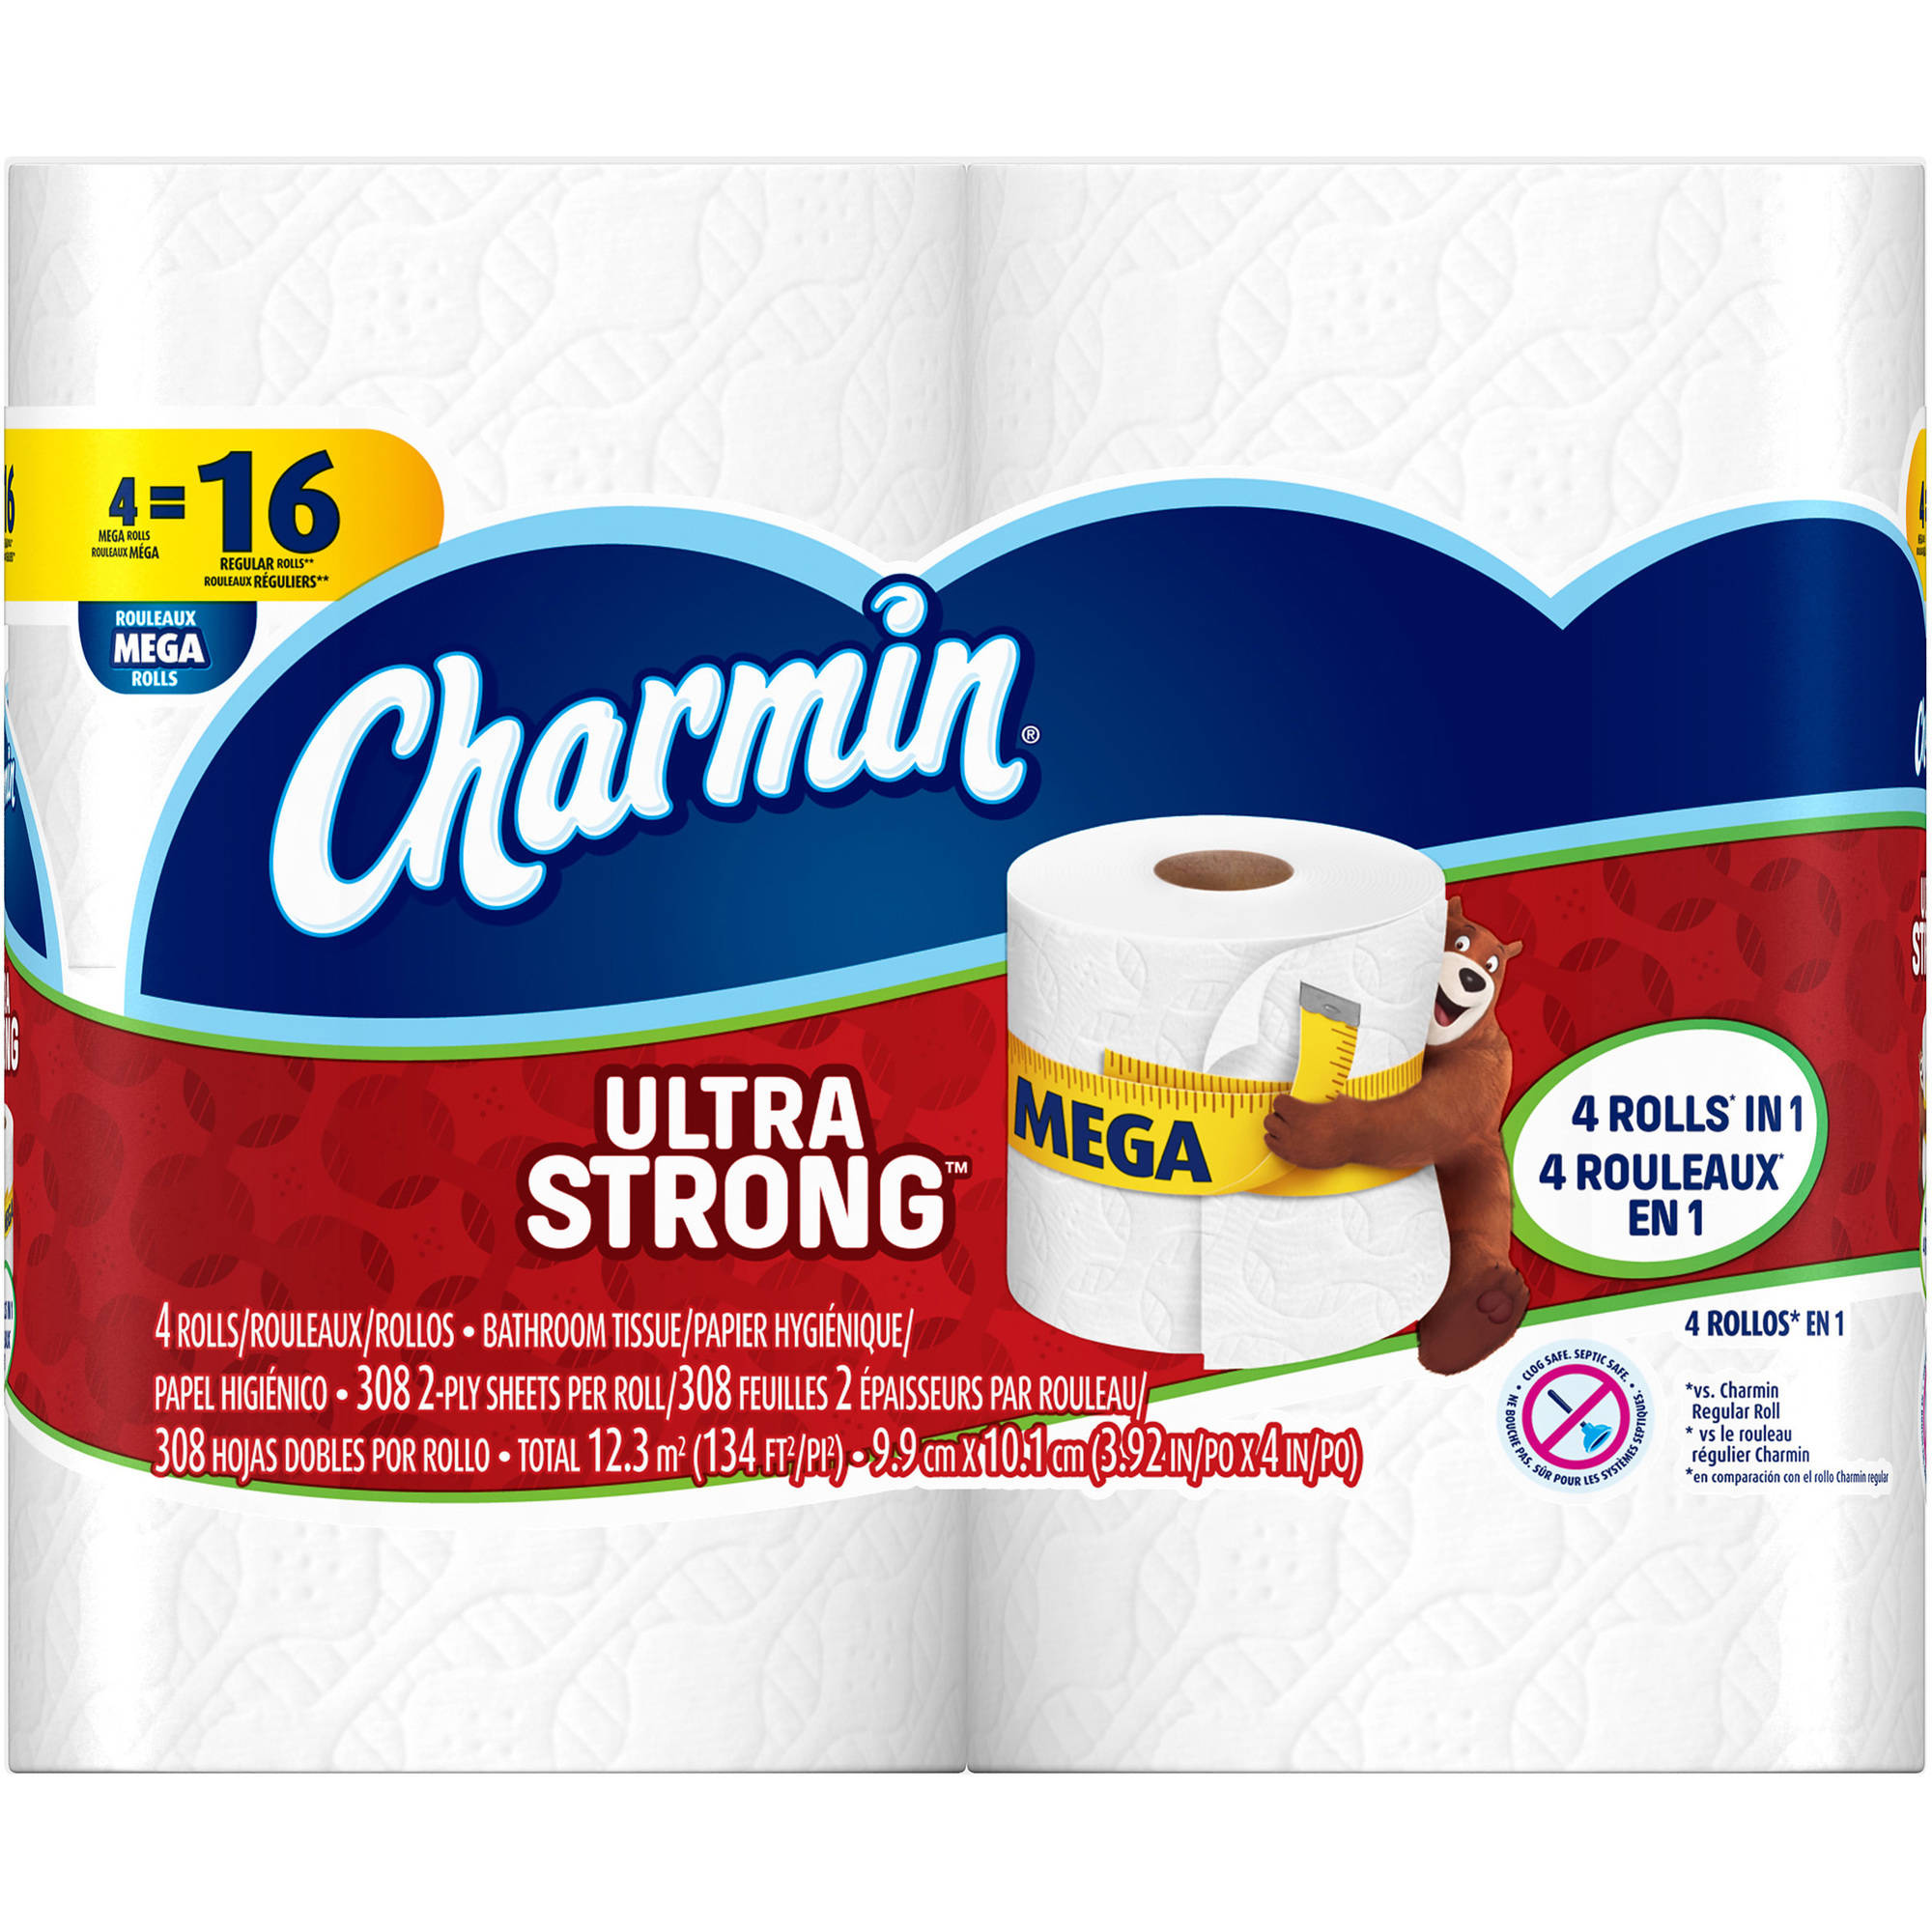 Charmin Ultra Strong Toilet Paper, 4 mega rolls by Generic